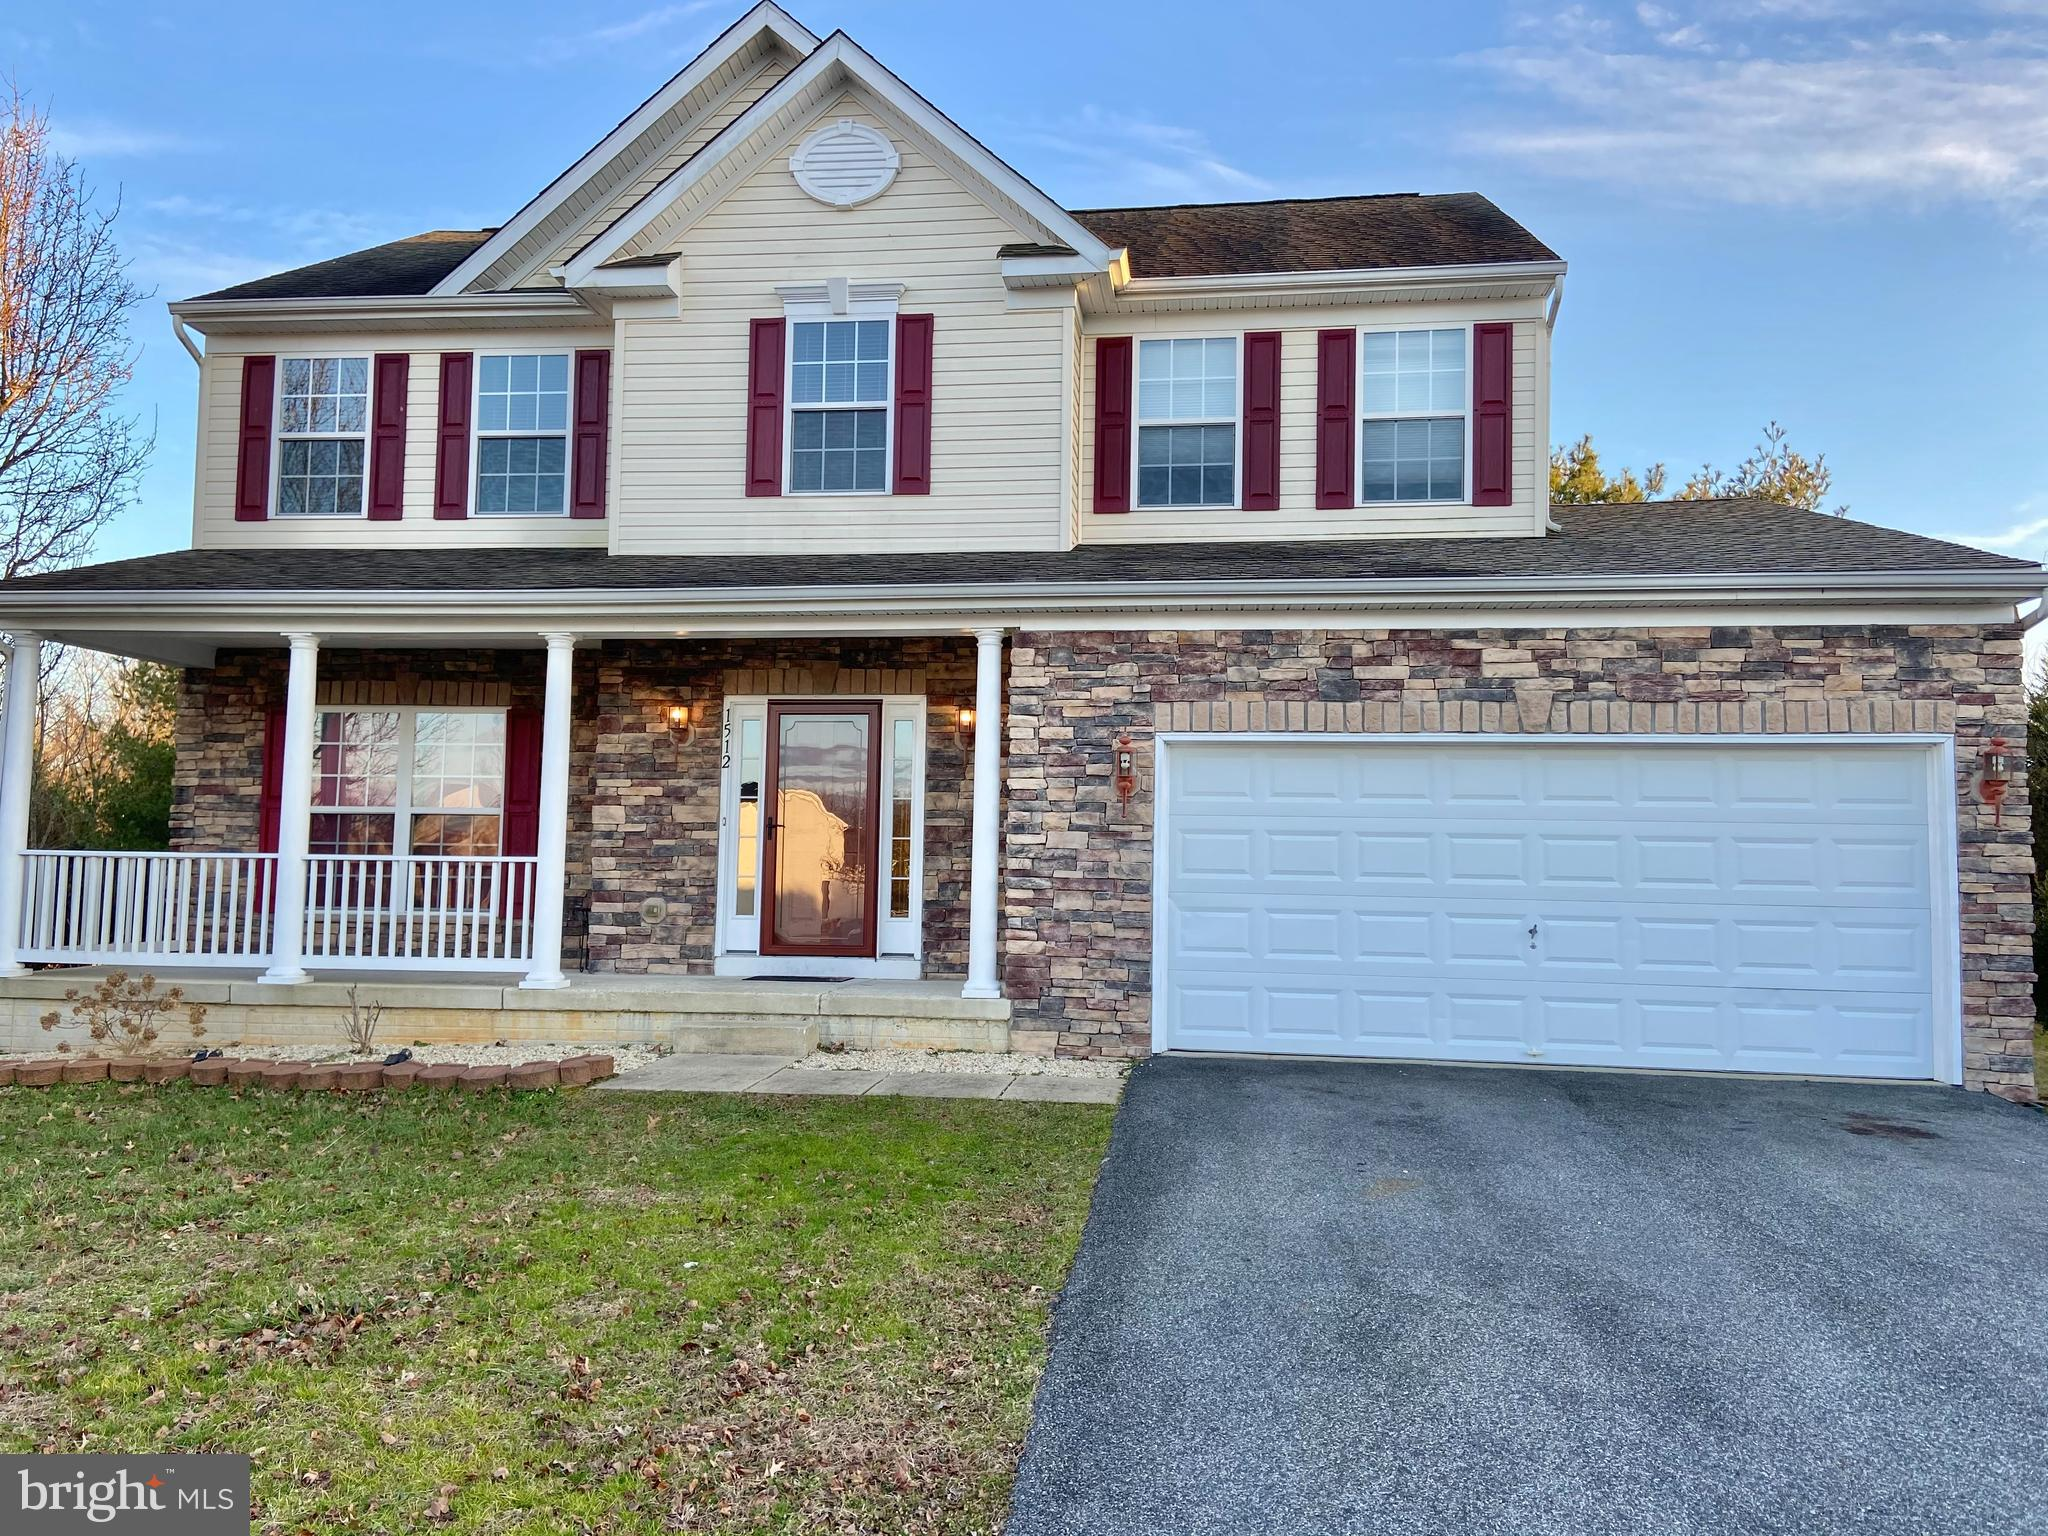 Beautiful, well maintained 5 BR, 3.5 BA home in the Harbor Pointe community. This home is situated